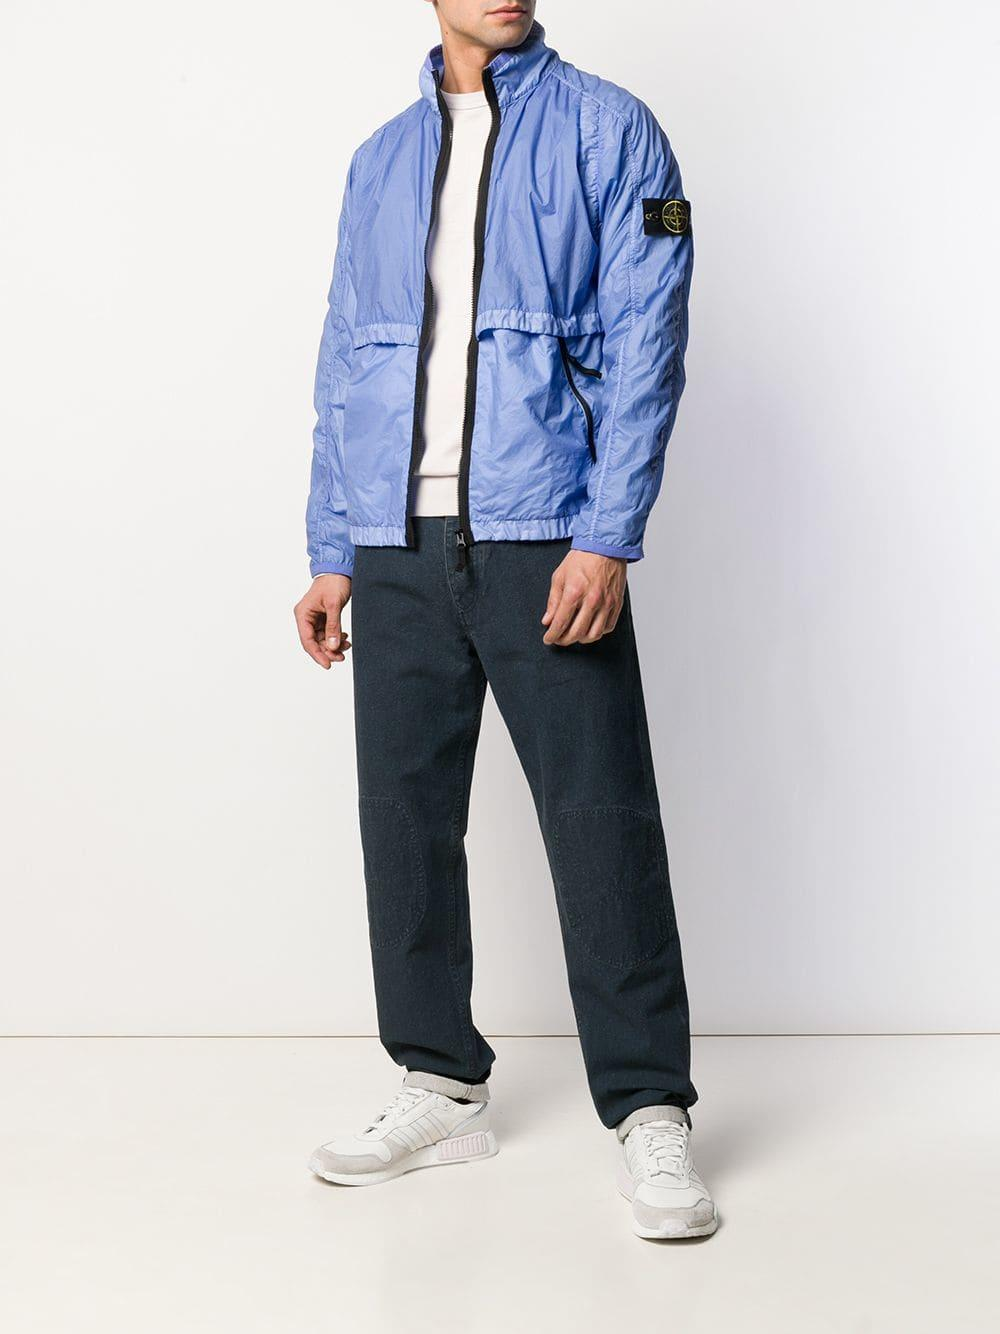 001fec2c Stone Island Logo Patch Jacket in Blue for Men - Lyst